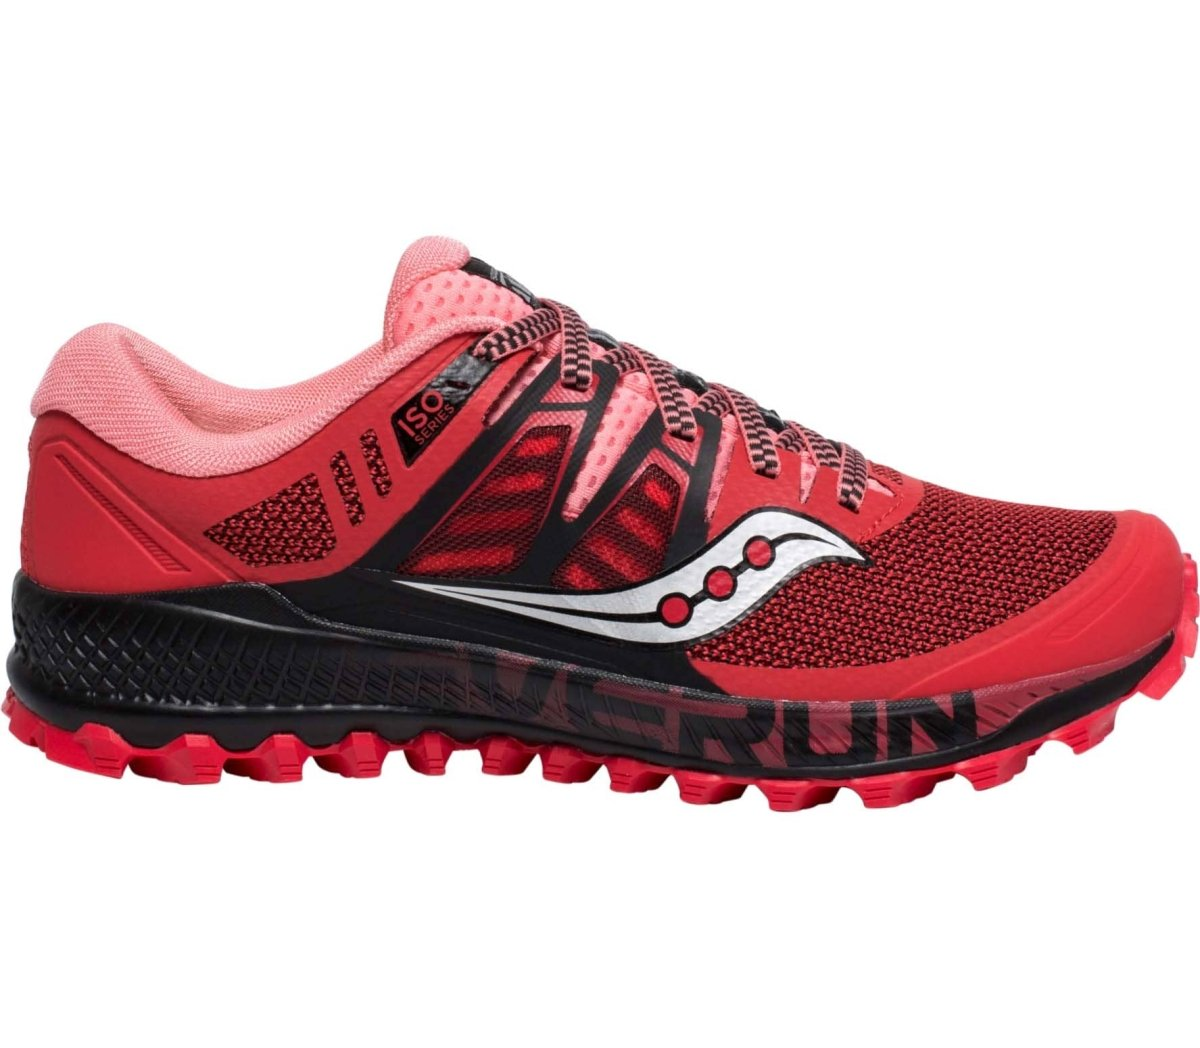 new styles 79c21 a0f92 1955010-saucony-peregrine-iso-sneaker-s10483-36.jpg